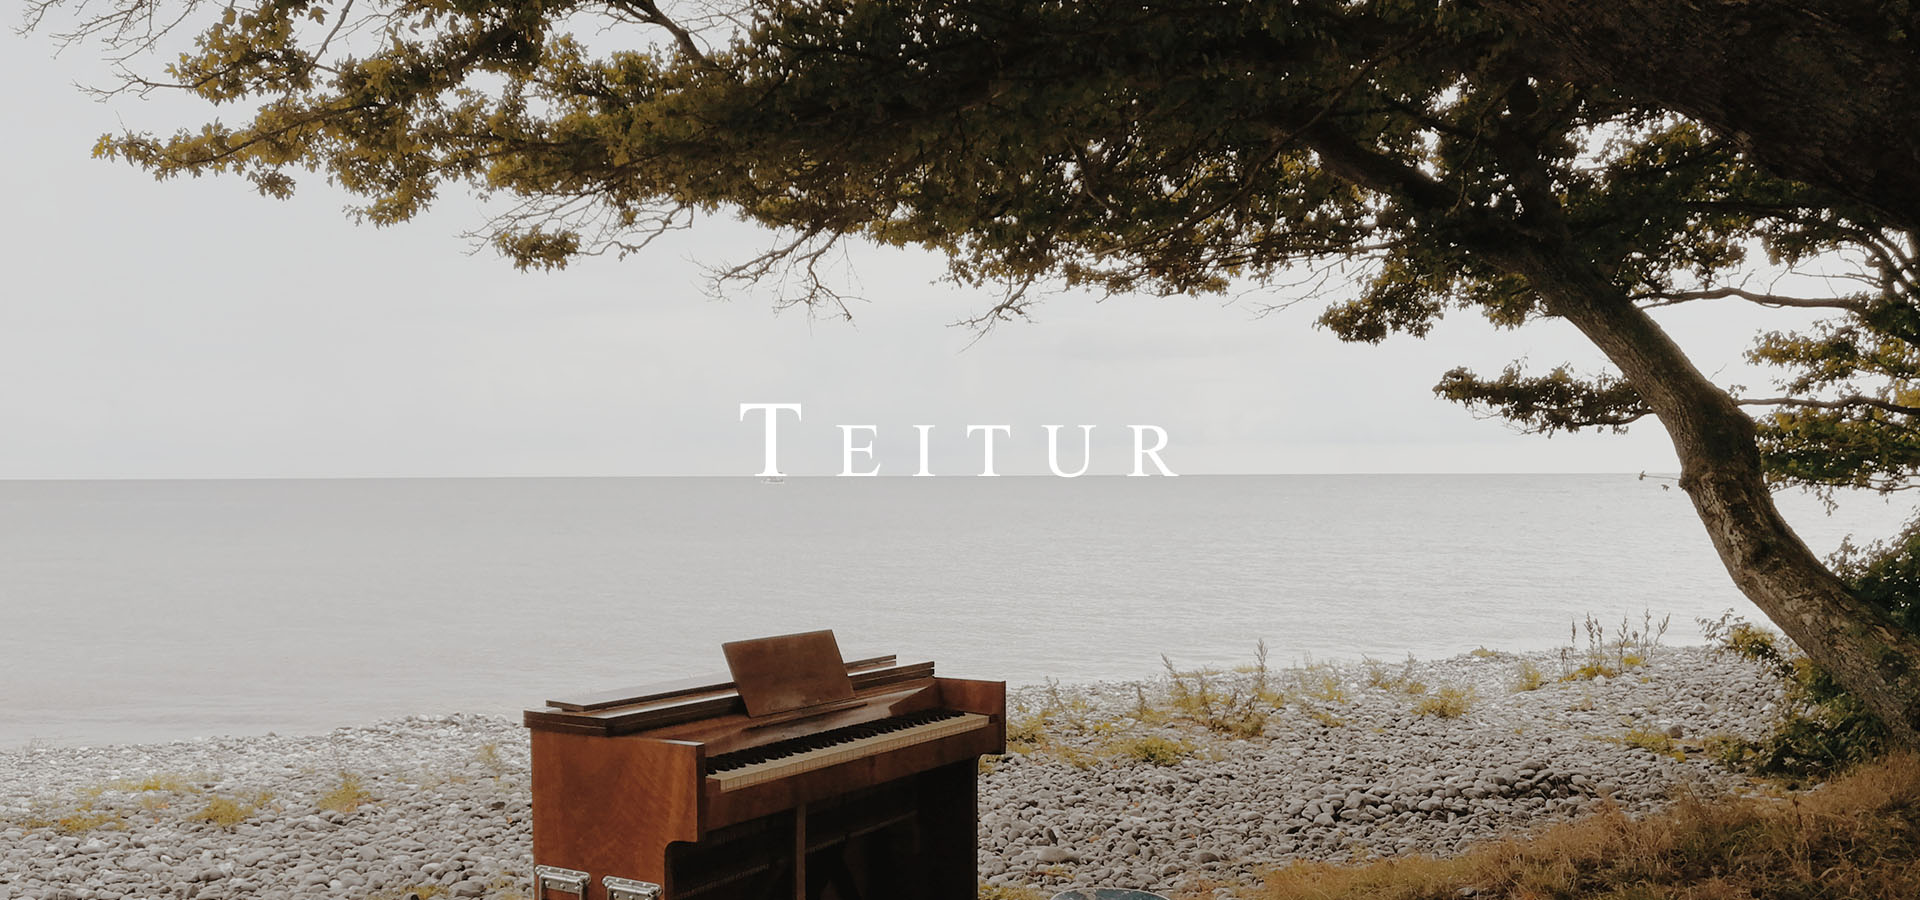 "<a href=""http://www.moensessions.com/2018/10/23/sep-teitur/"">.</a>"